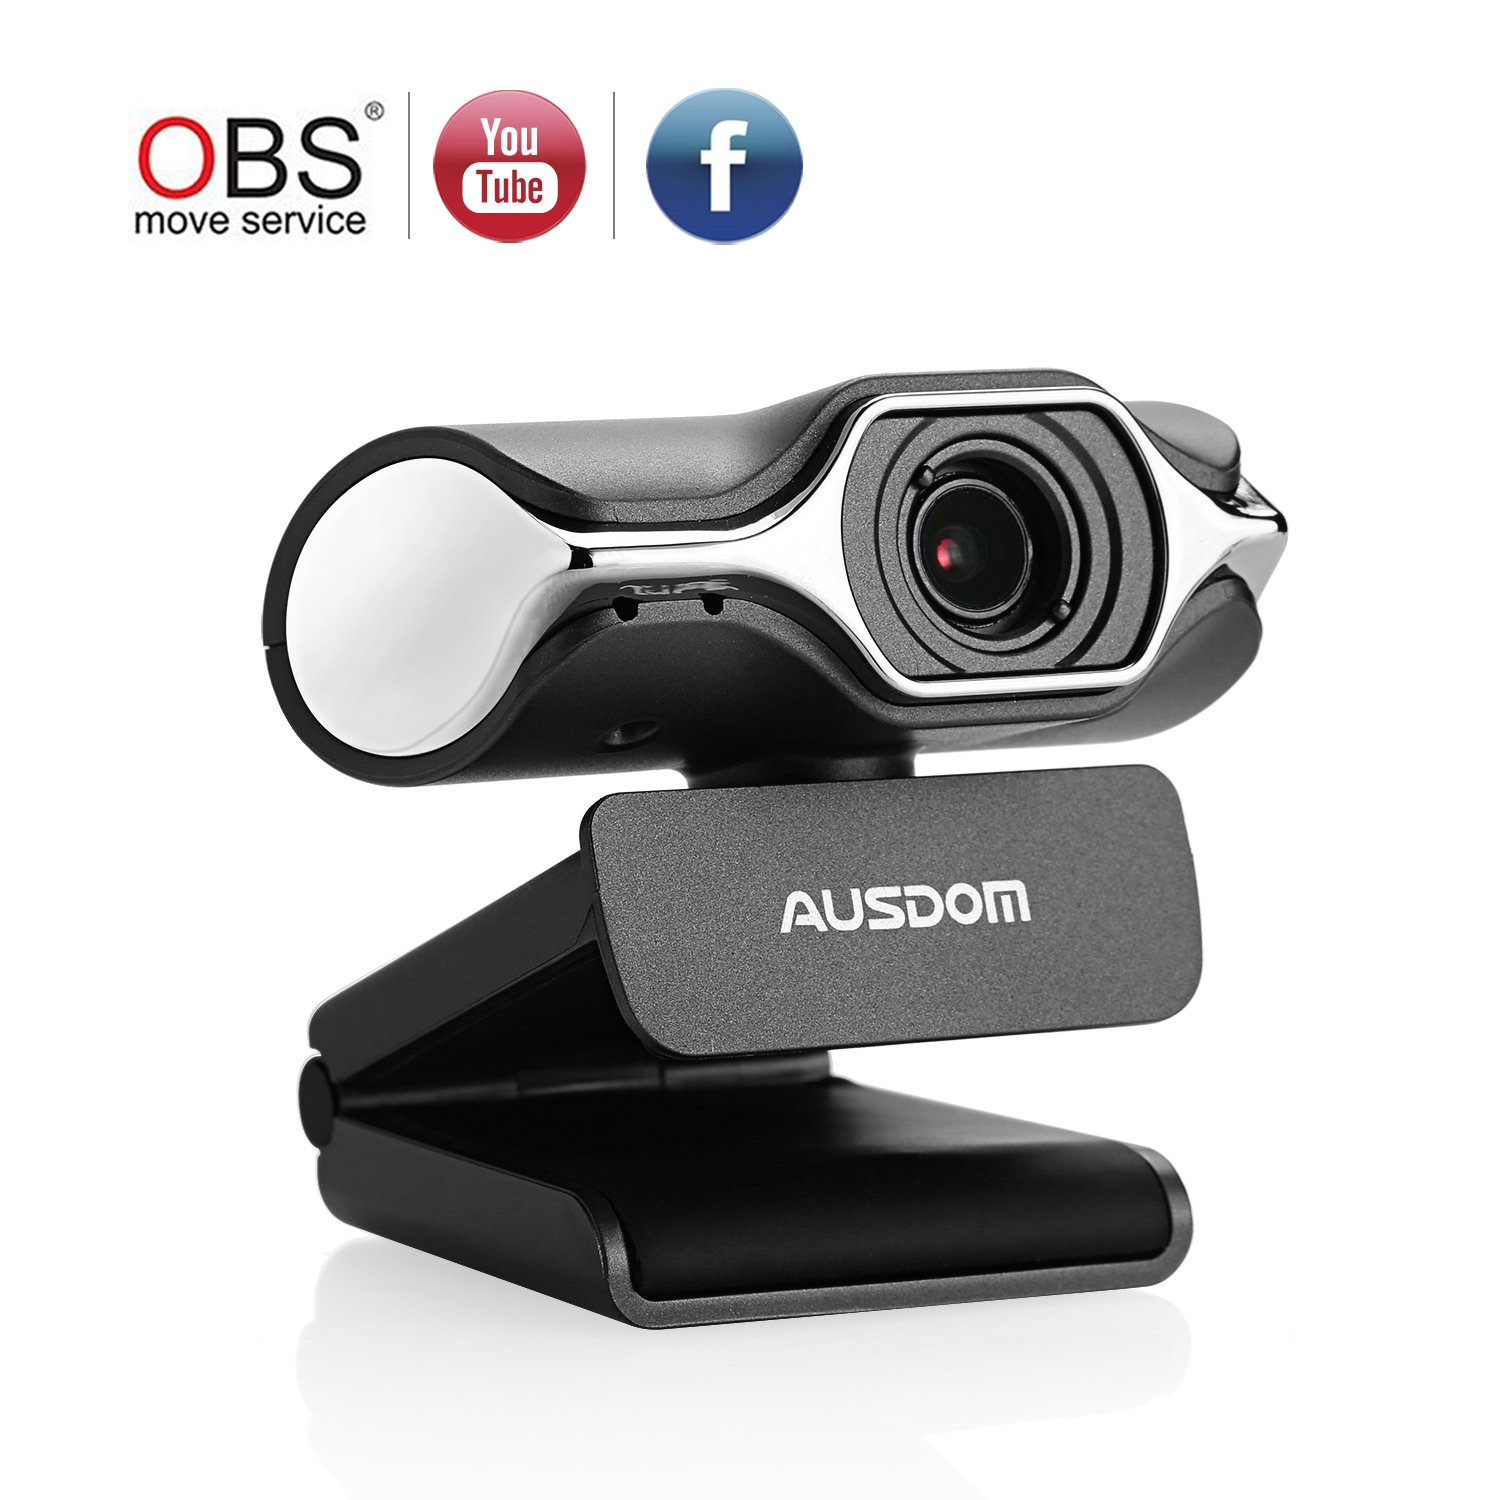 Ausdom Full HD Webcam 1080p, Live Streaming Camera, USB Webcam for Widescreen Video Calling and Recording, Support Facebook YouTube Streaming, Compatible for MAC OS Windows 10/8/ 7 AW620